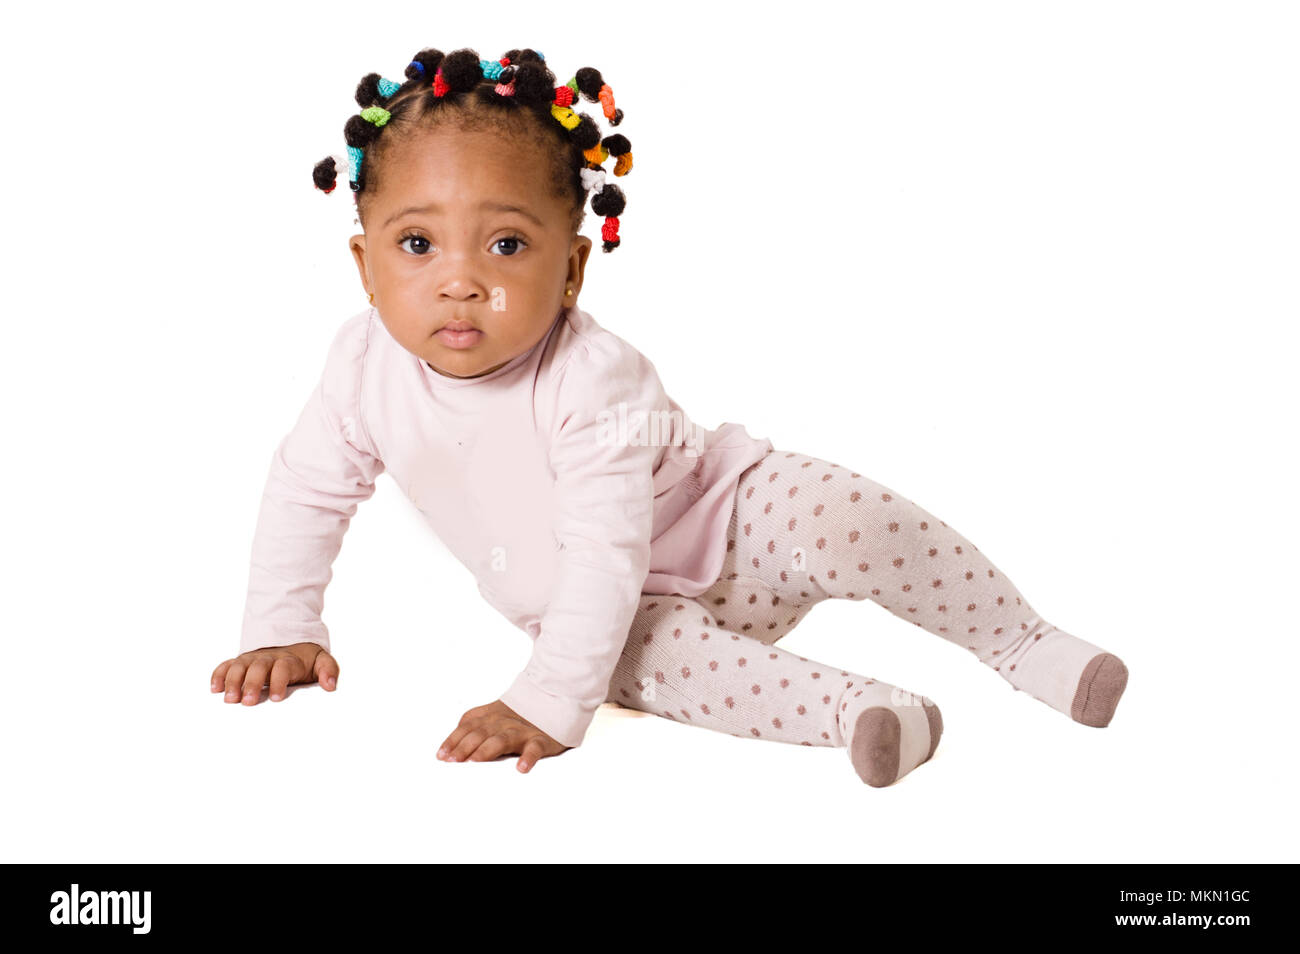 Portrait of nice baby sitting and looking at the camera on a white background - Stock Image